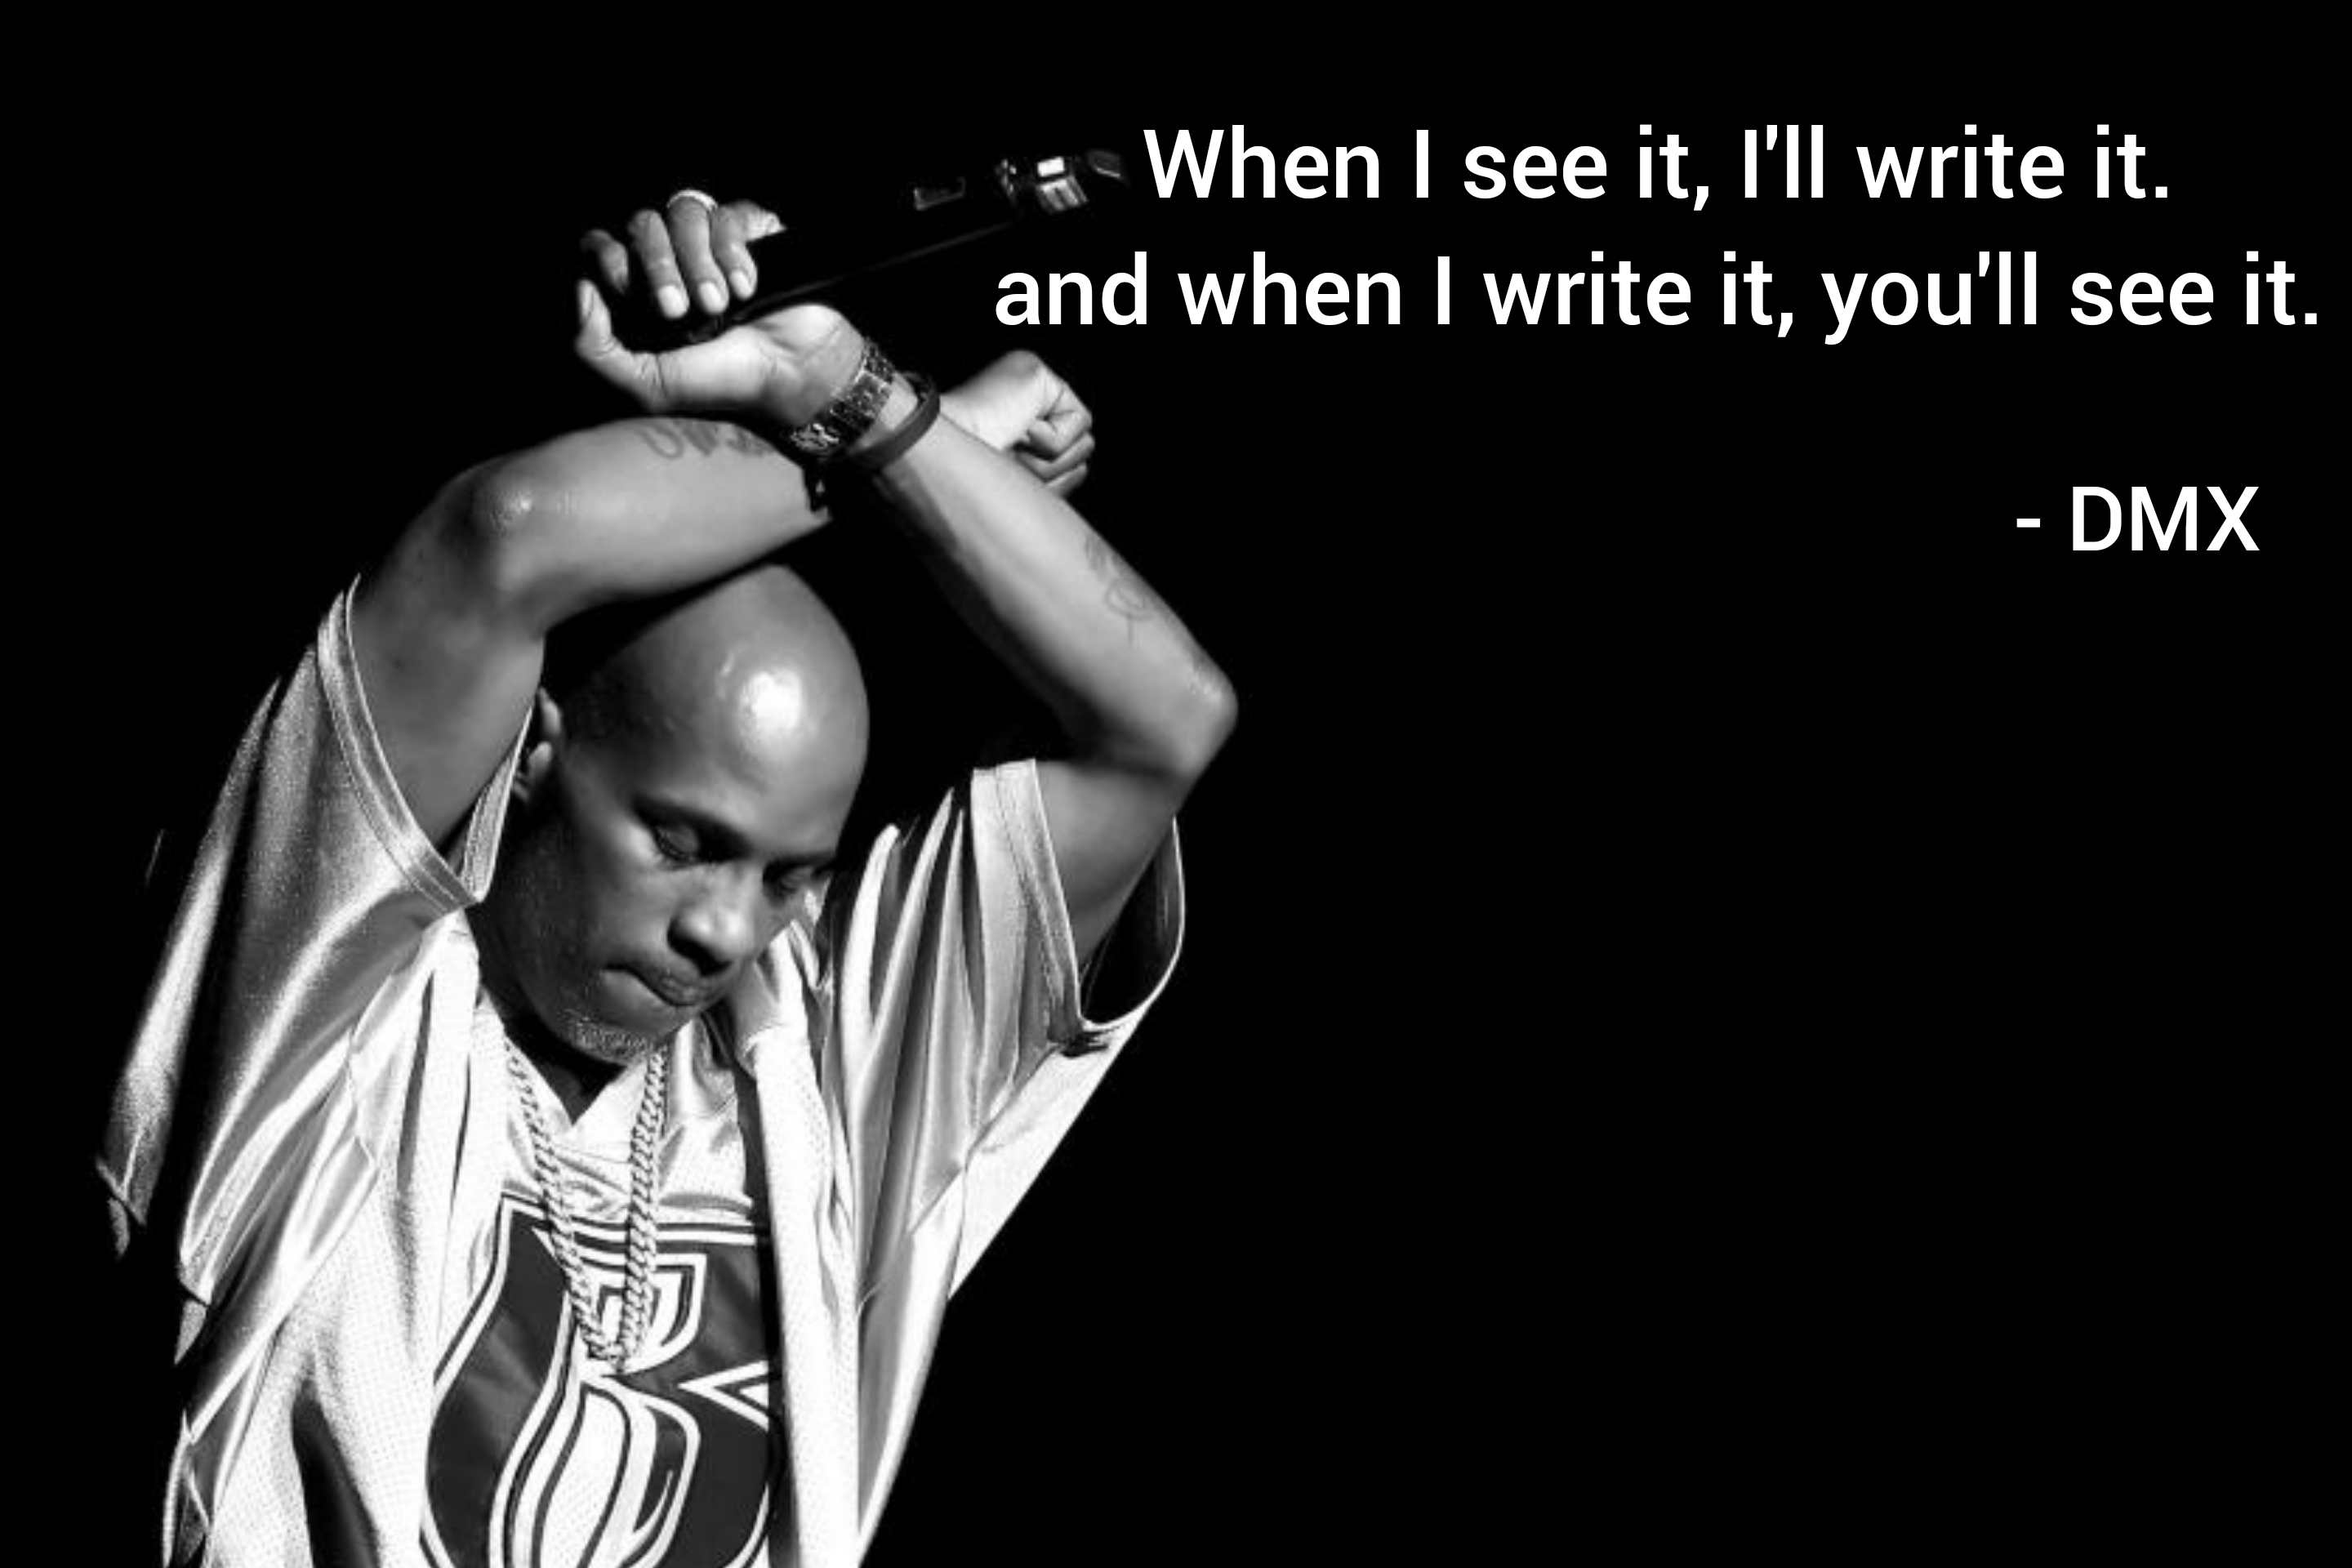 """[OC] """"When I see it I'll write it. and when I write it, you'll see it"""". -DMX [840×560]"""